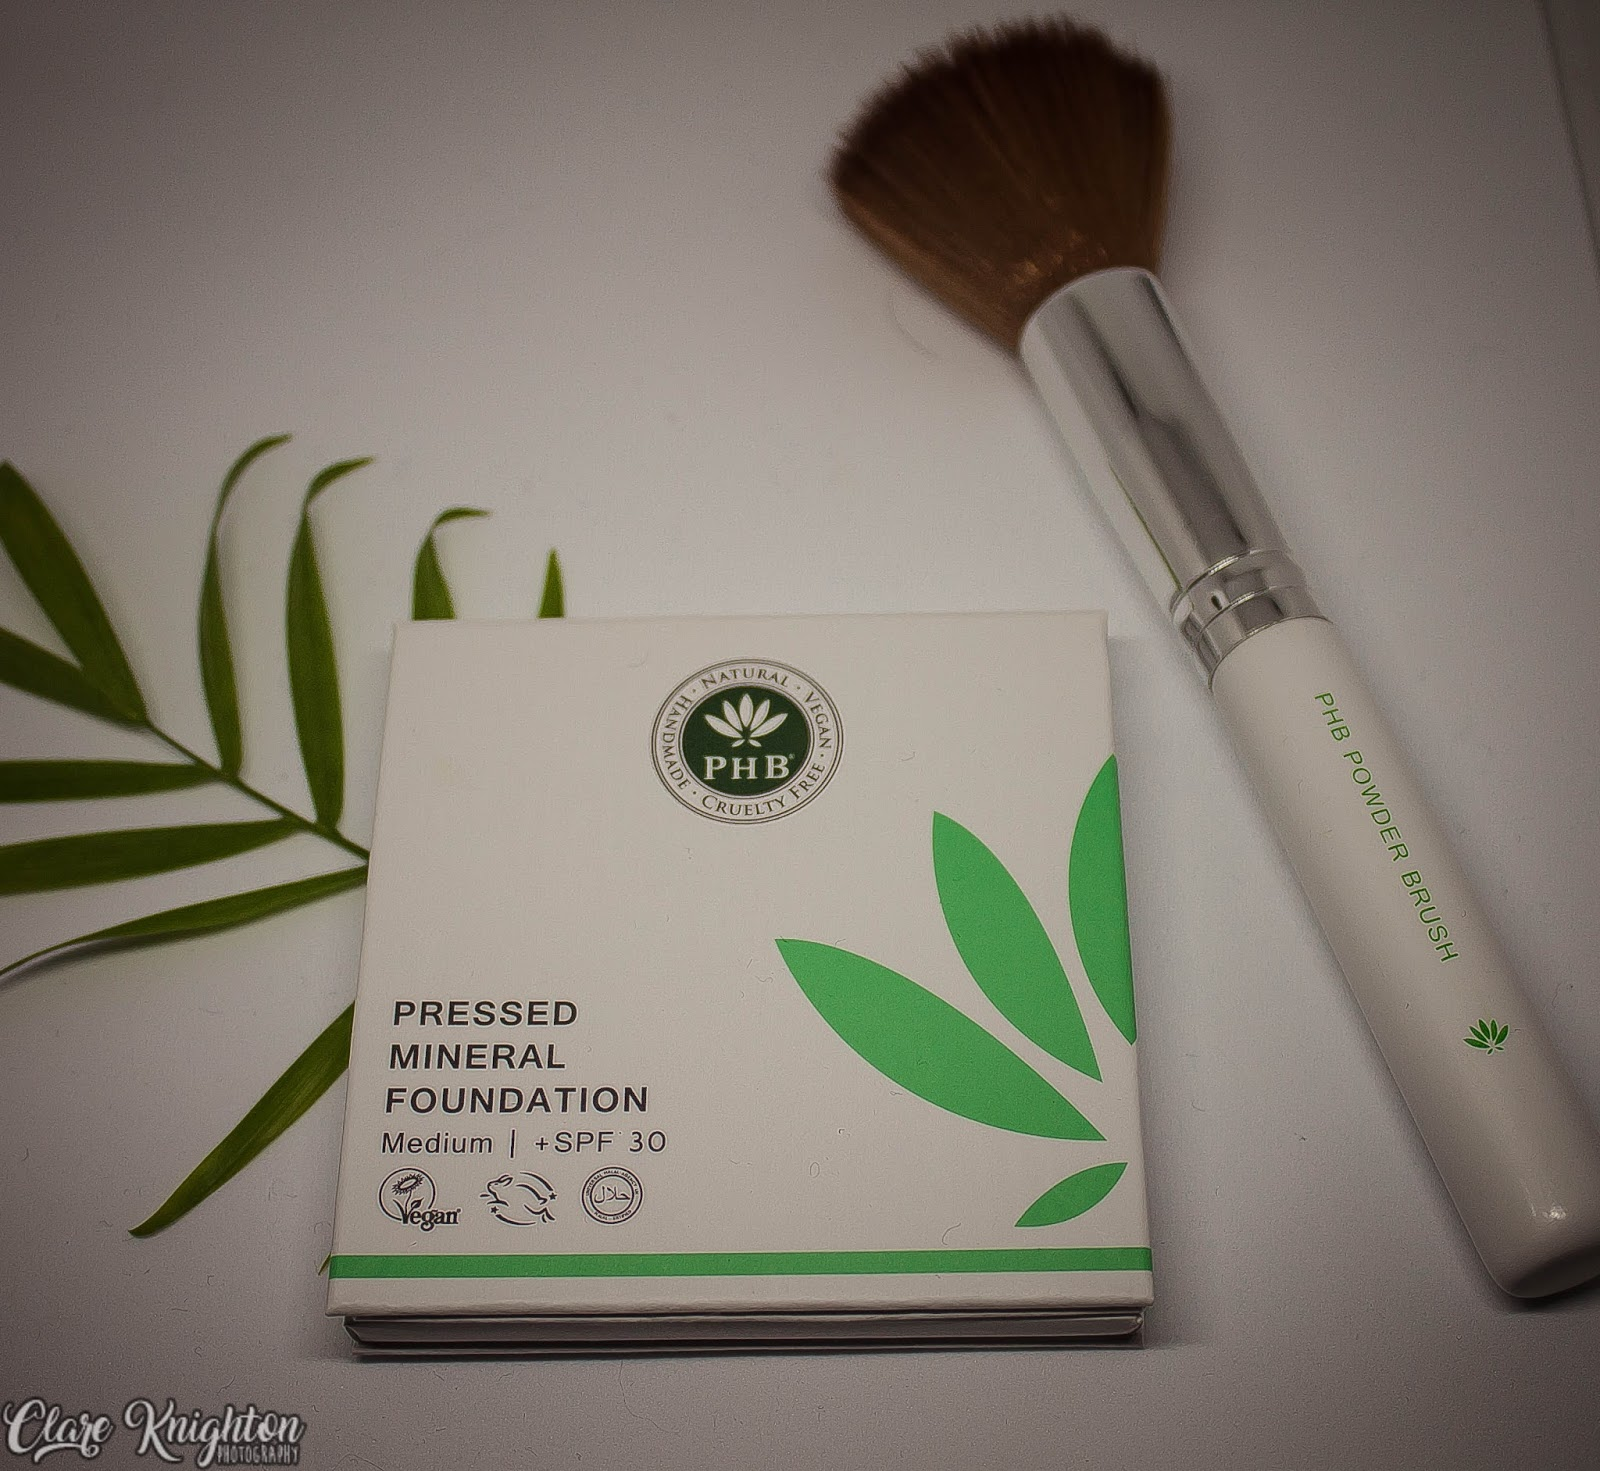 PHB Ethical Beauty   Pressed Mineral Foundation   Review   Clare ...